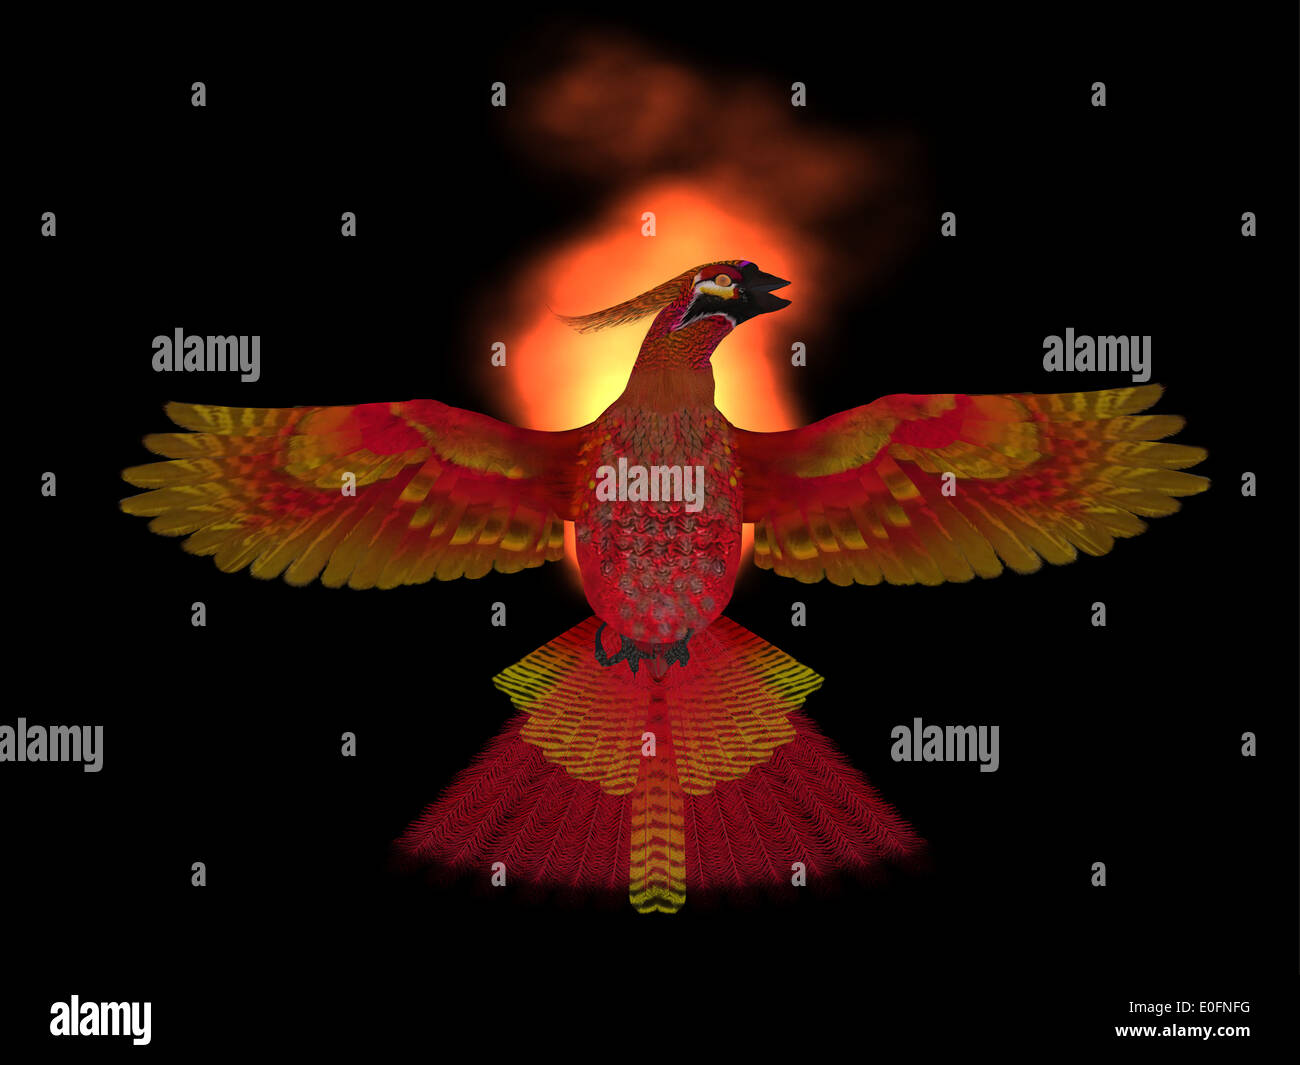 the phoenix bird is a symbol of new beginnings and rising from ashes